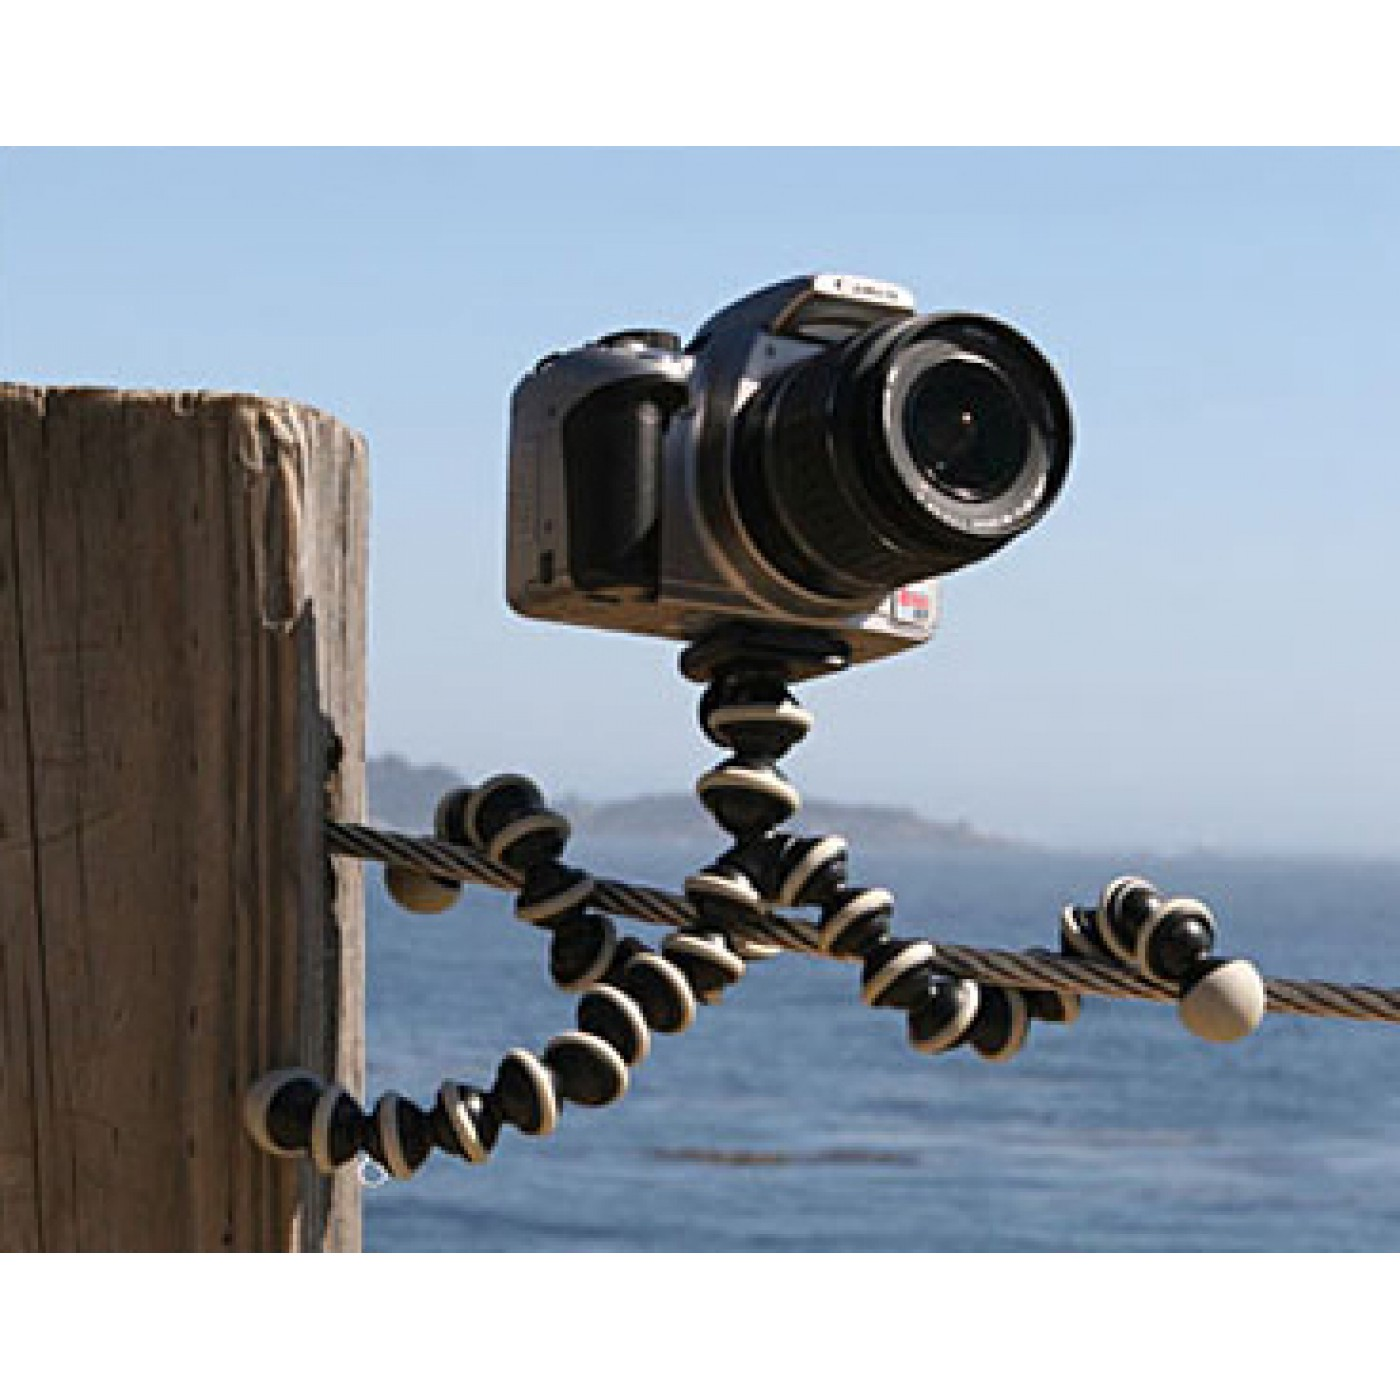 tr pied gorillapod pour appareil photo et cam ra. Black Bedroom Furniture Sets. Home Design Ideas